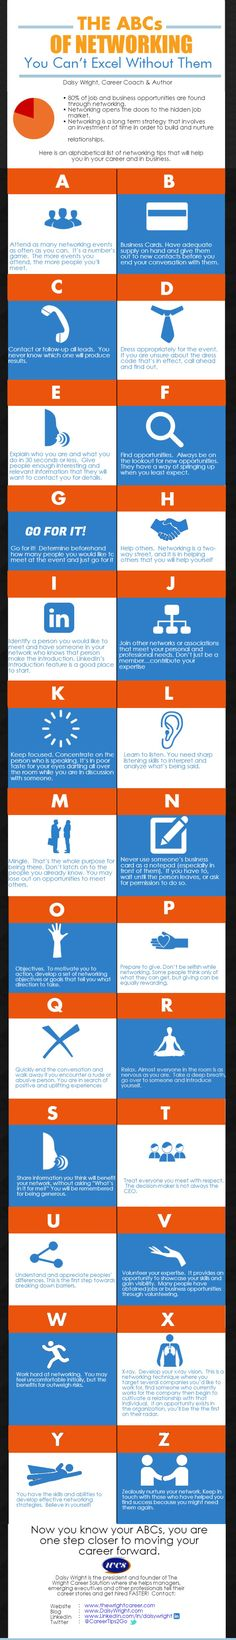 The ABCs of Networking: 26 Simple Tips to Get You Started